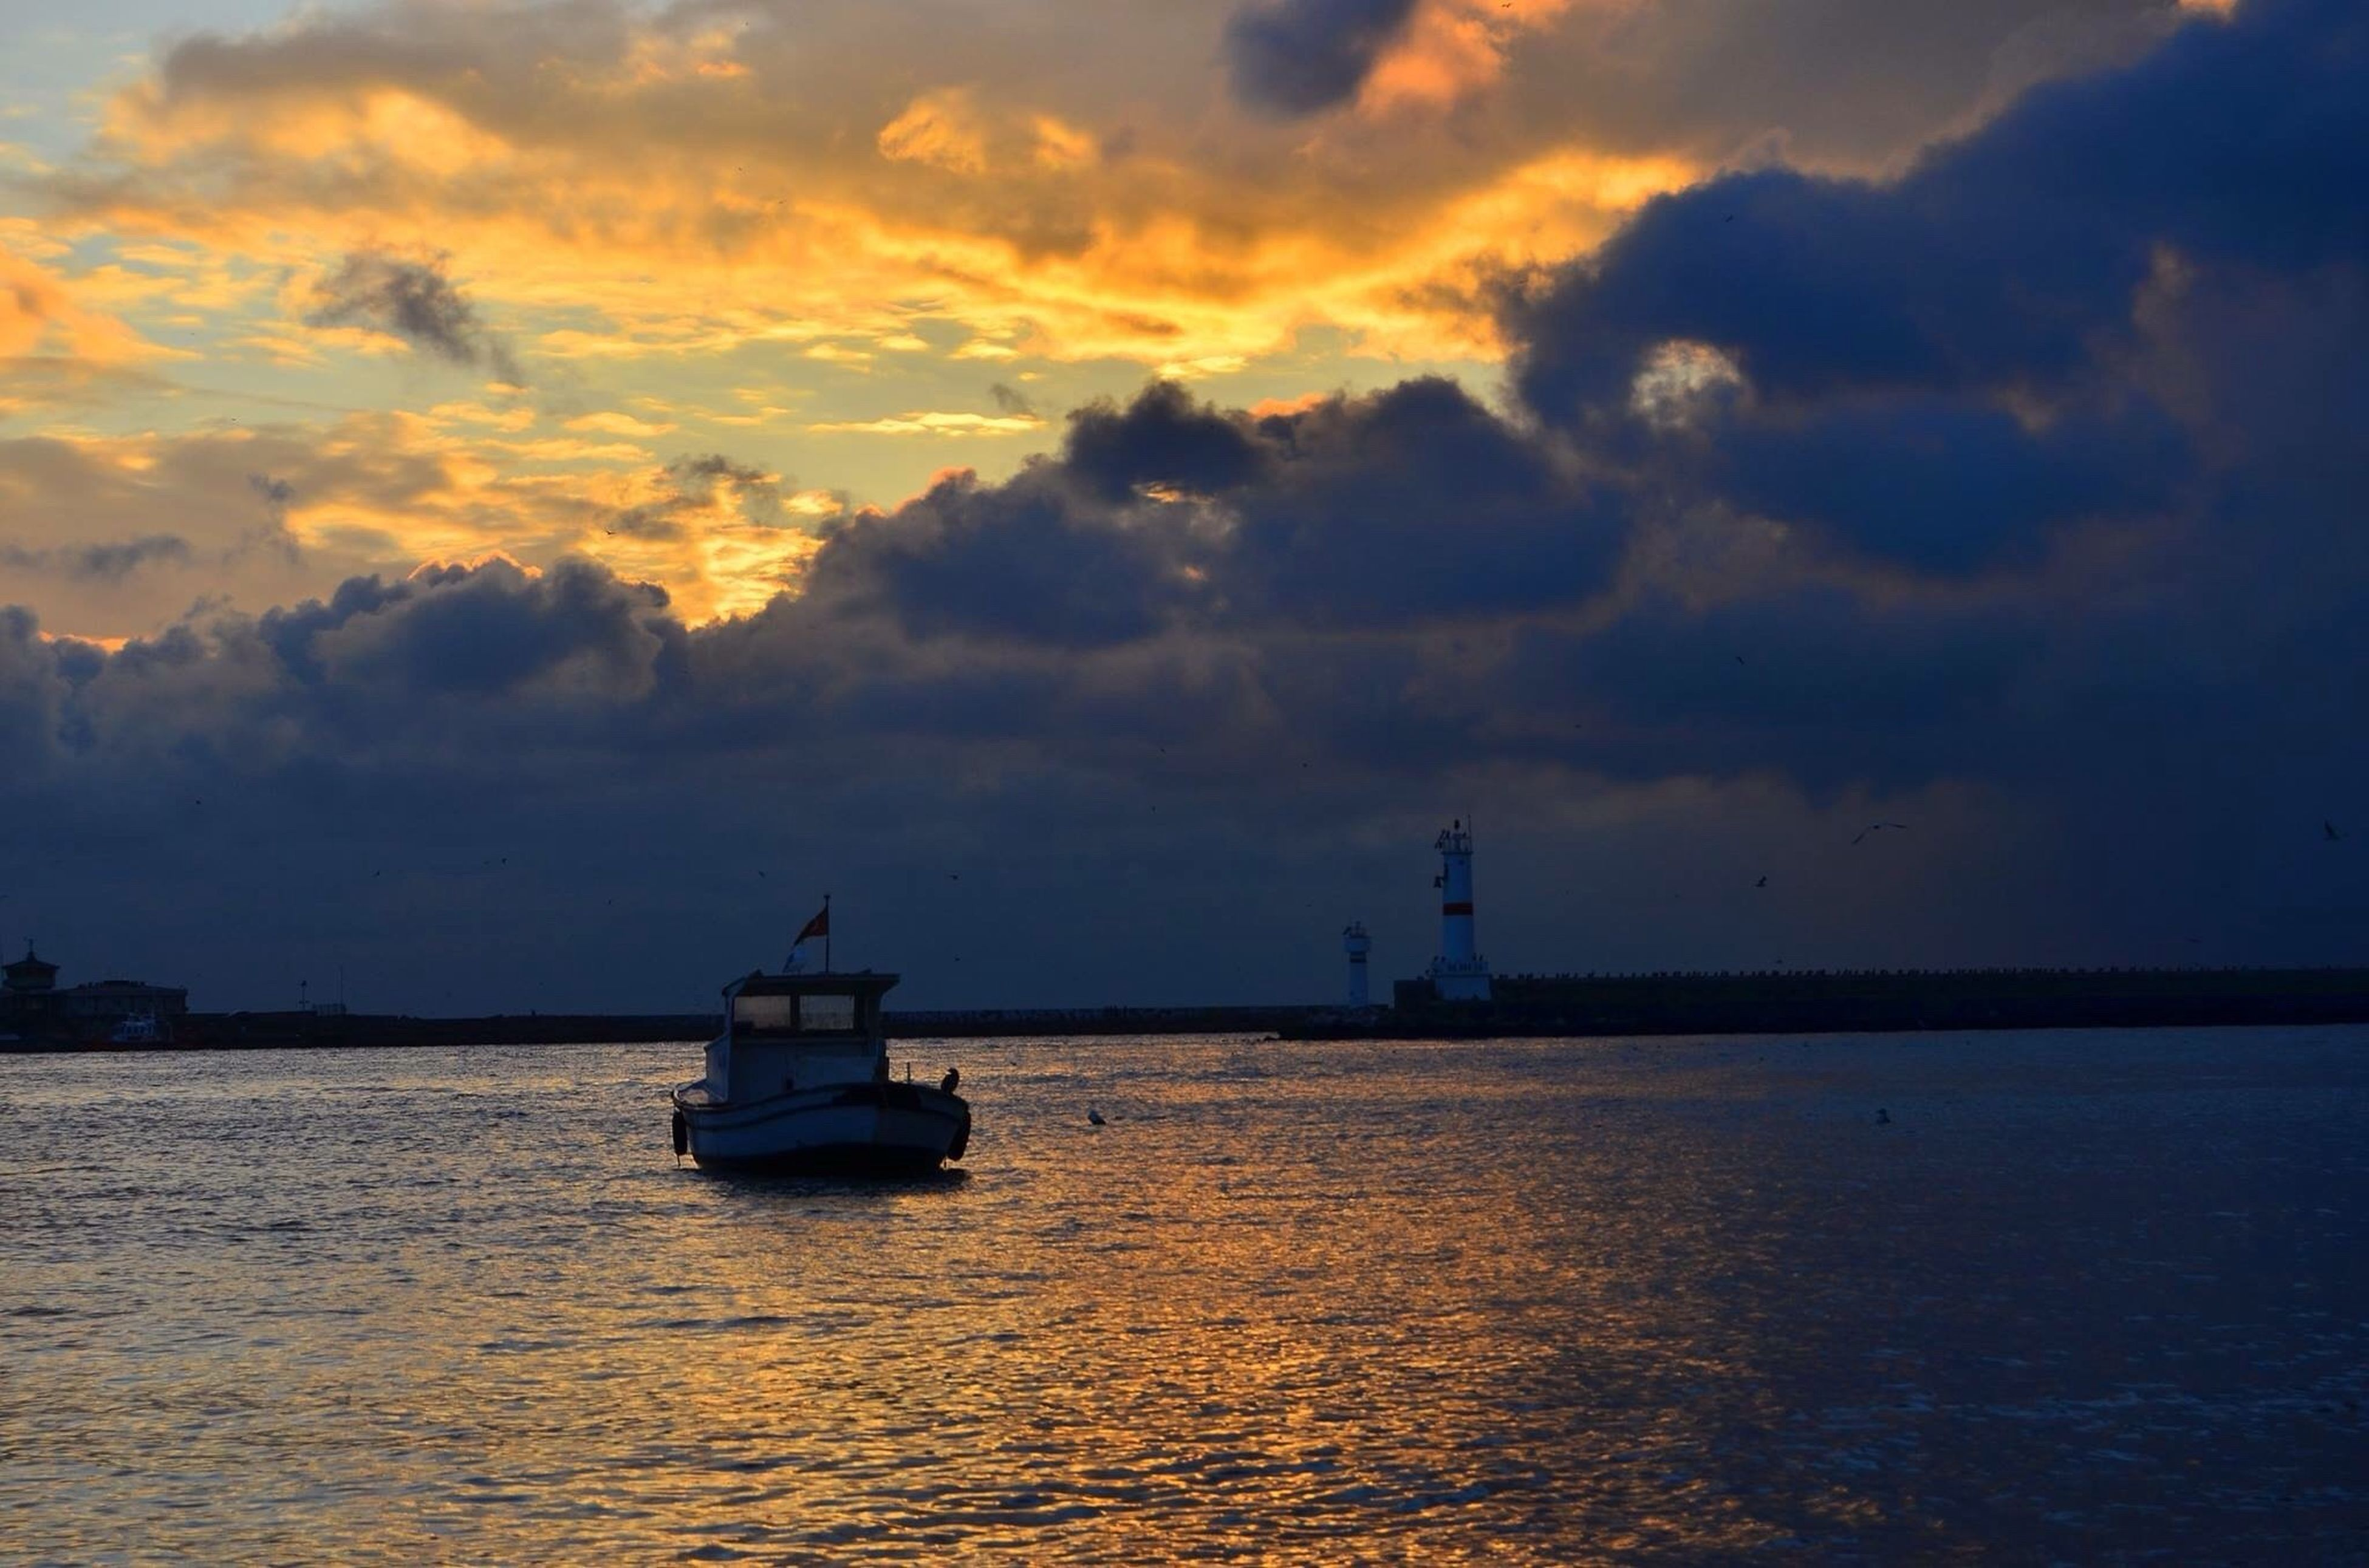 cloud - sky, nautical vessel, sea, sunset, sky, travel destinations, water, no people, business finance and industry, outdoors, sailing, nature